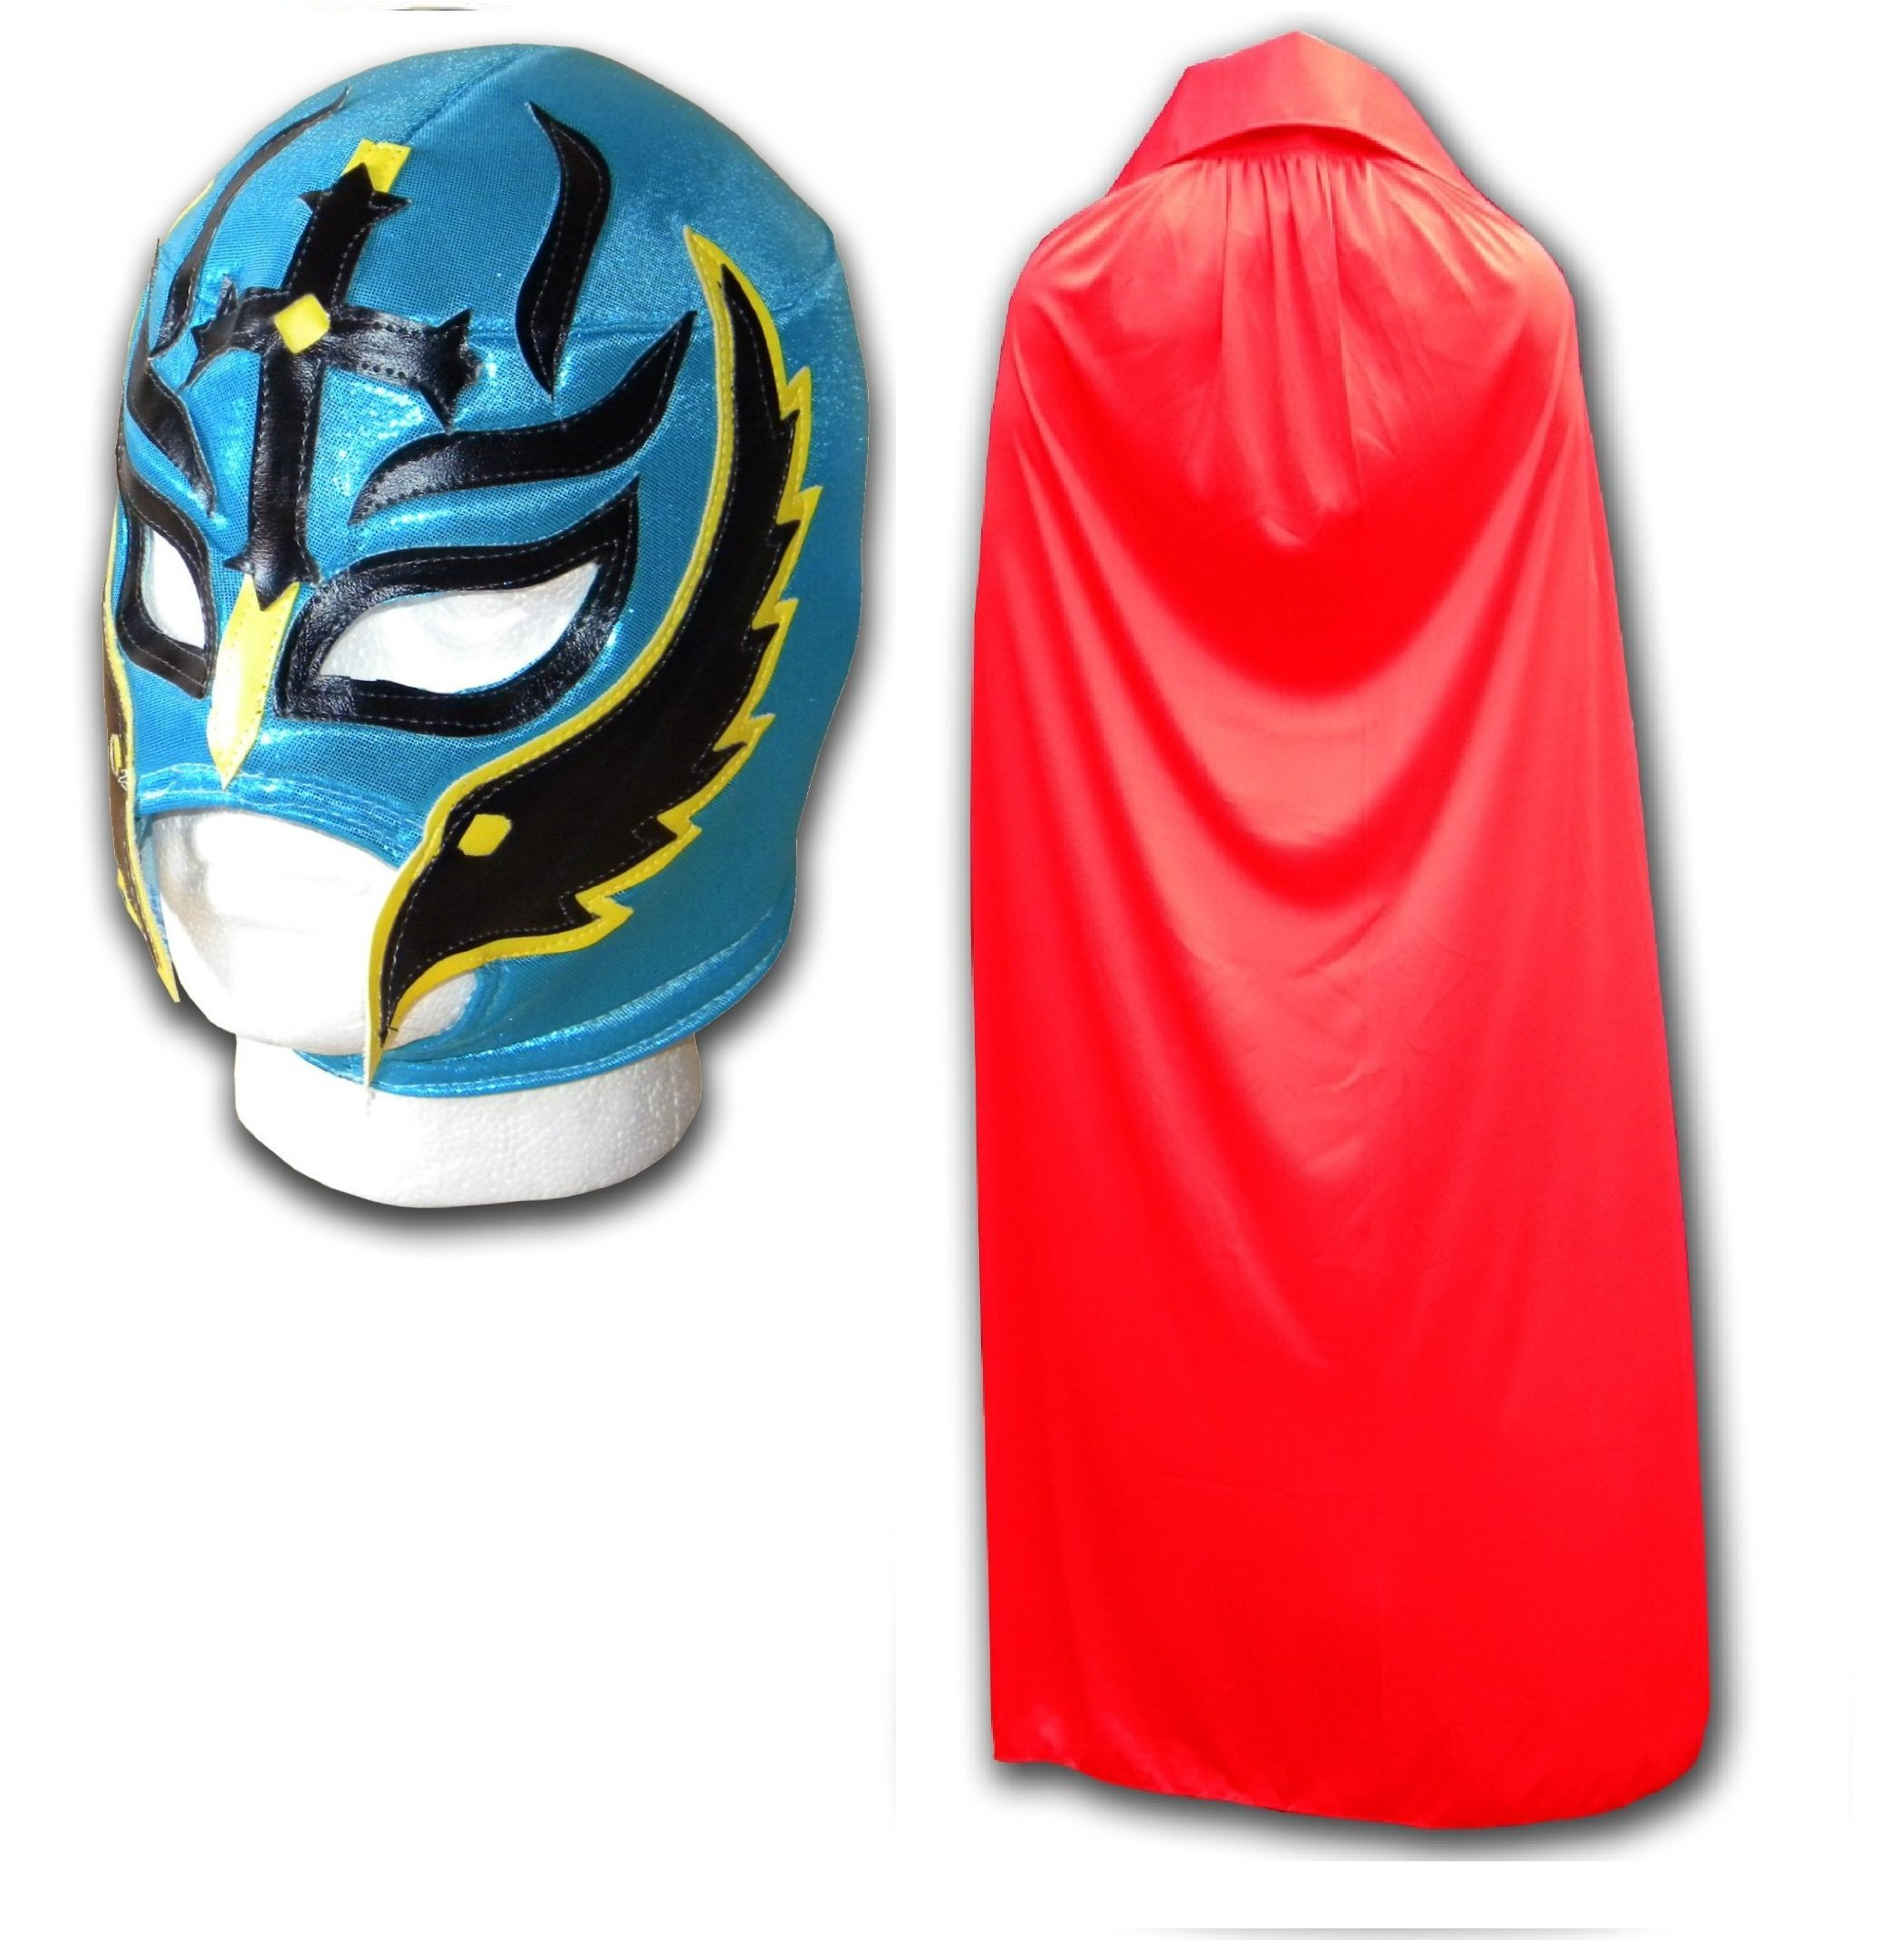 WRESTLING MASKS UK Men's Son Of The Devil Cape Luchador Mexican Wrestling Set One Size Turqoise And Red